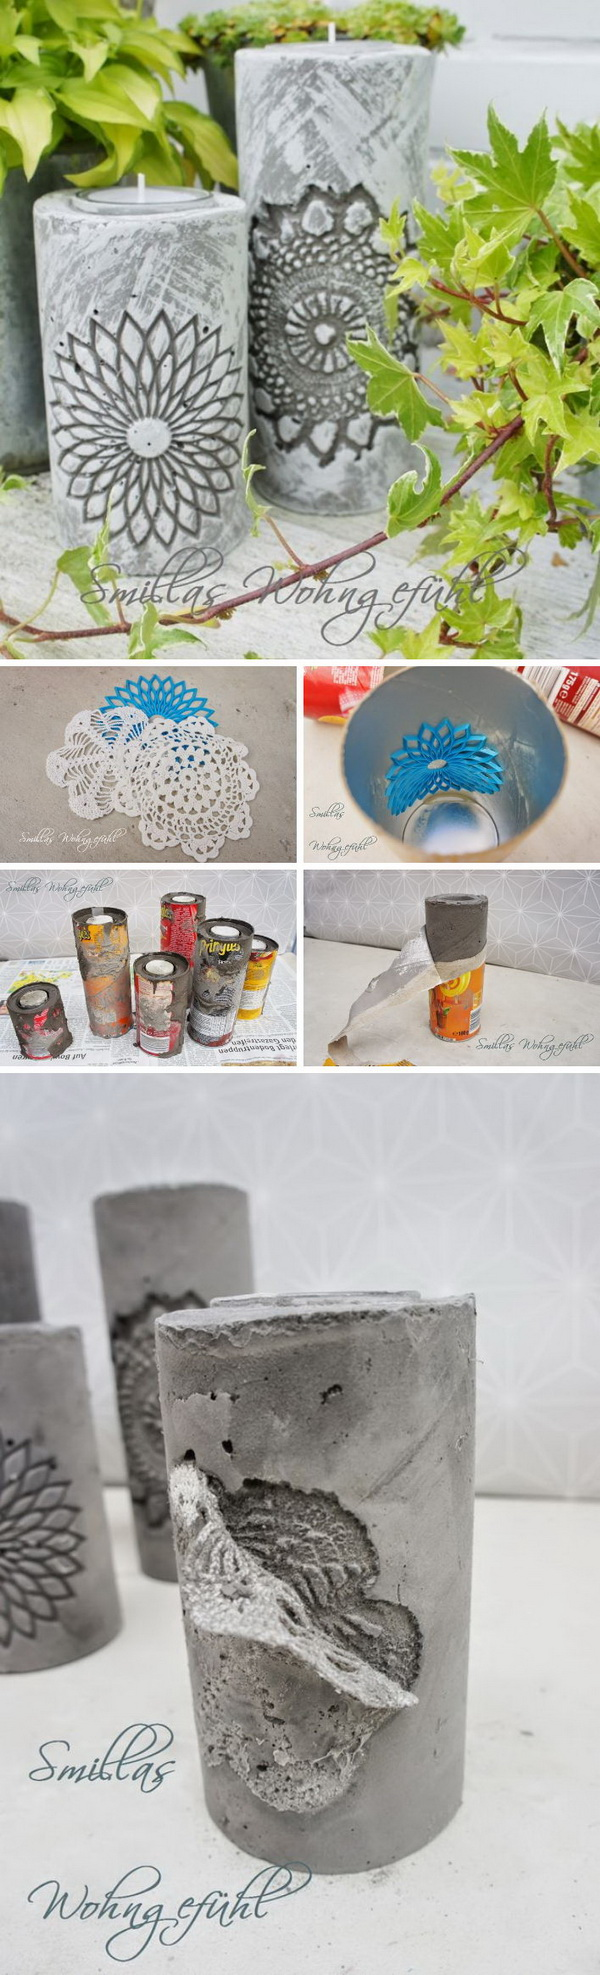 DIY Concrete Candle Holder.